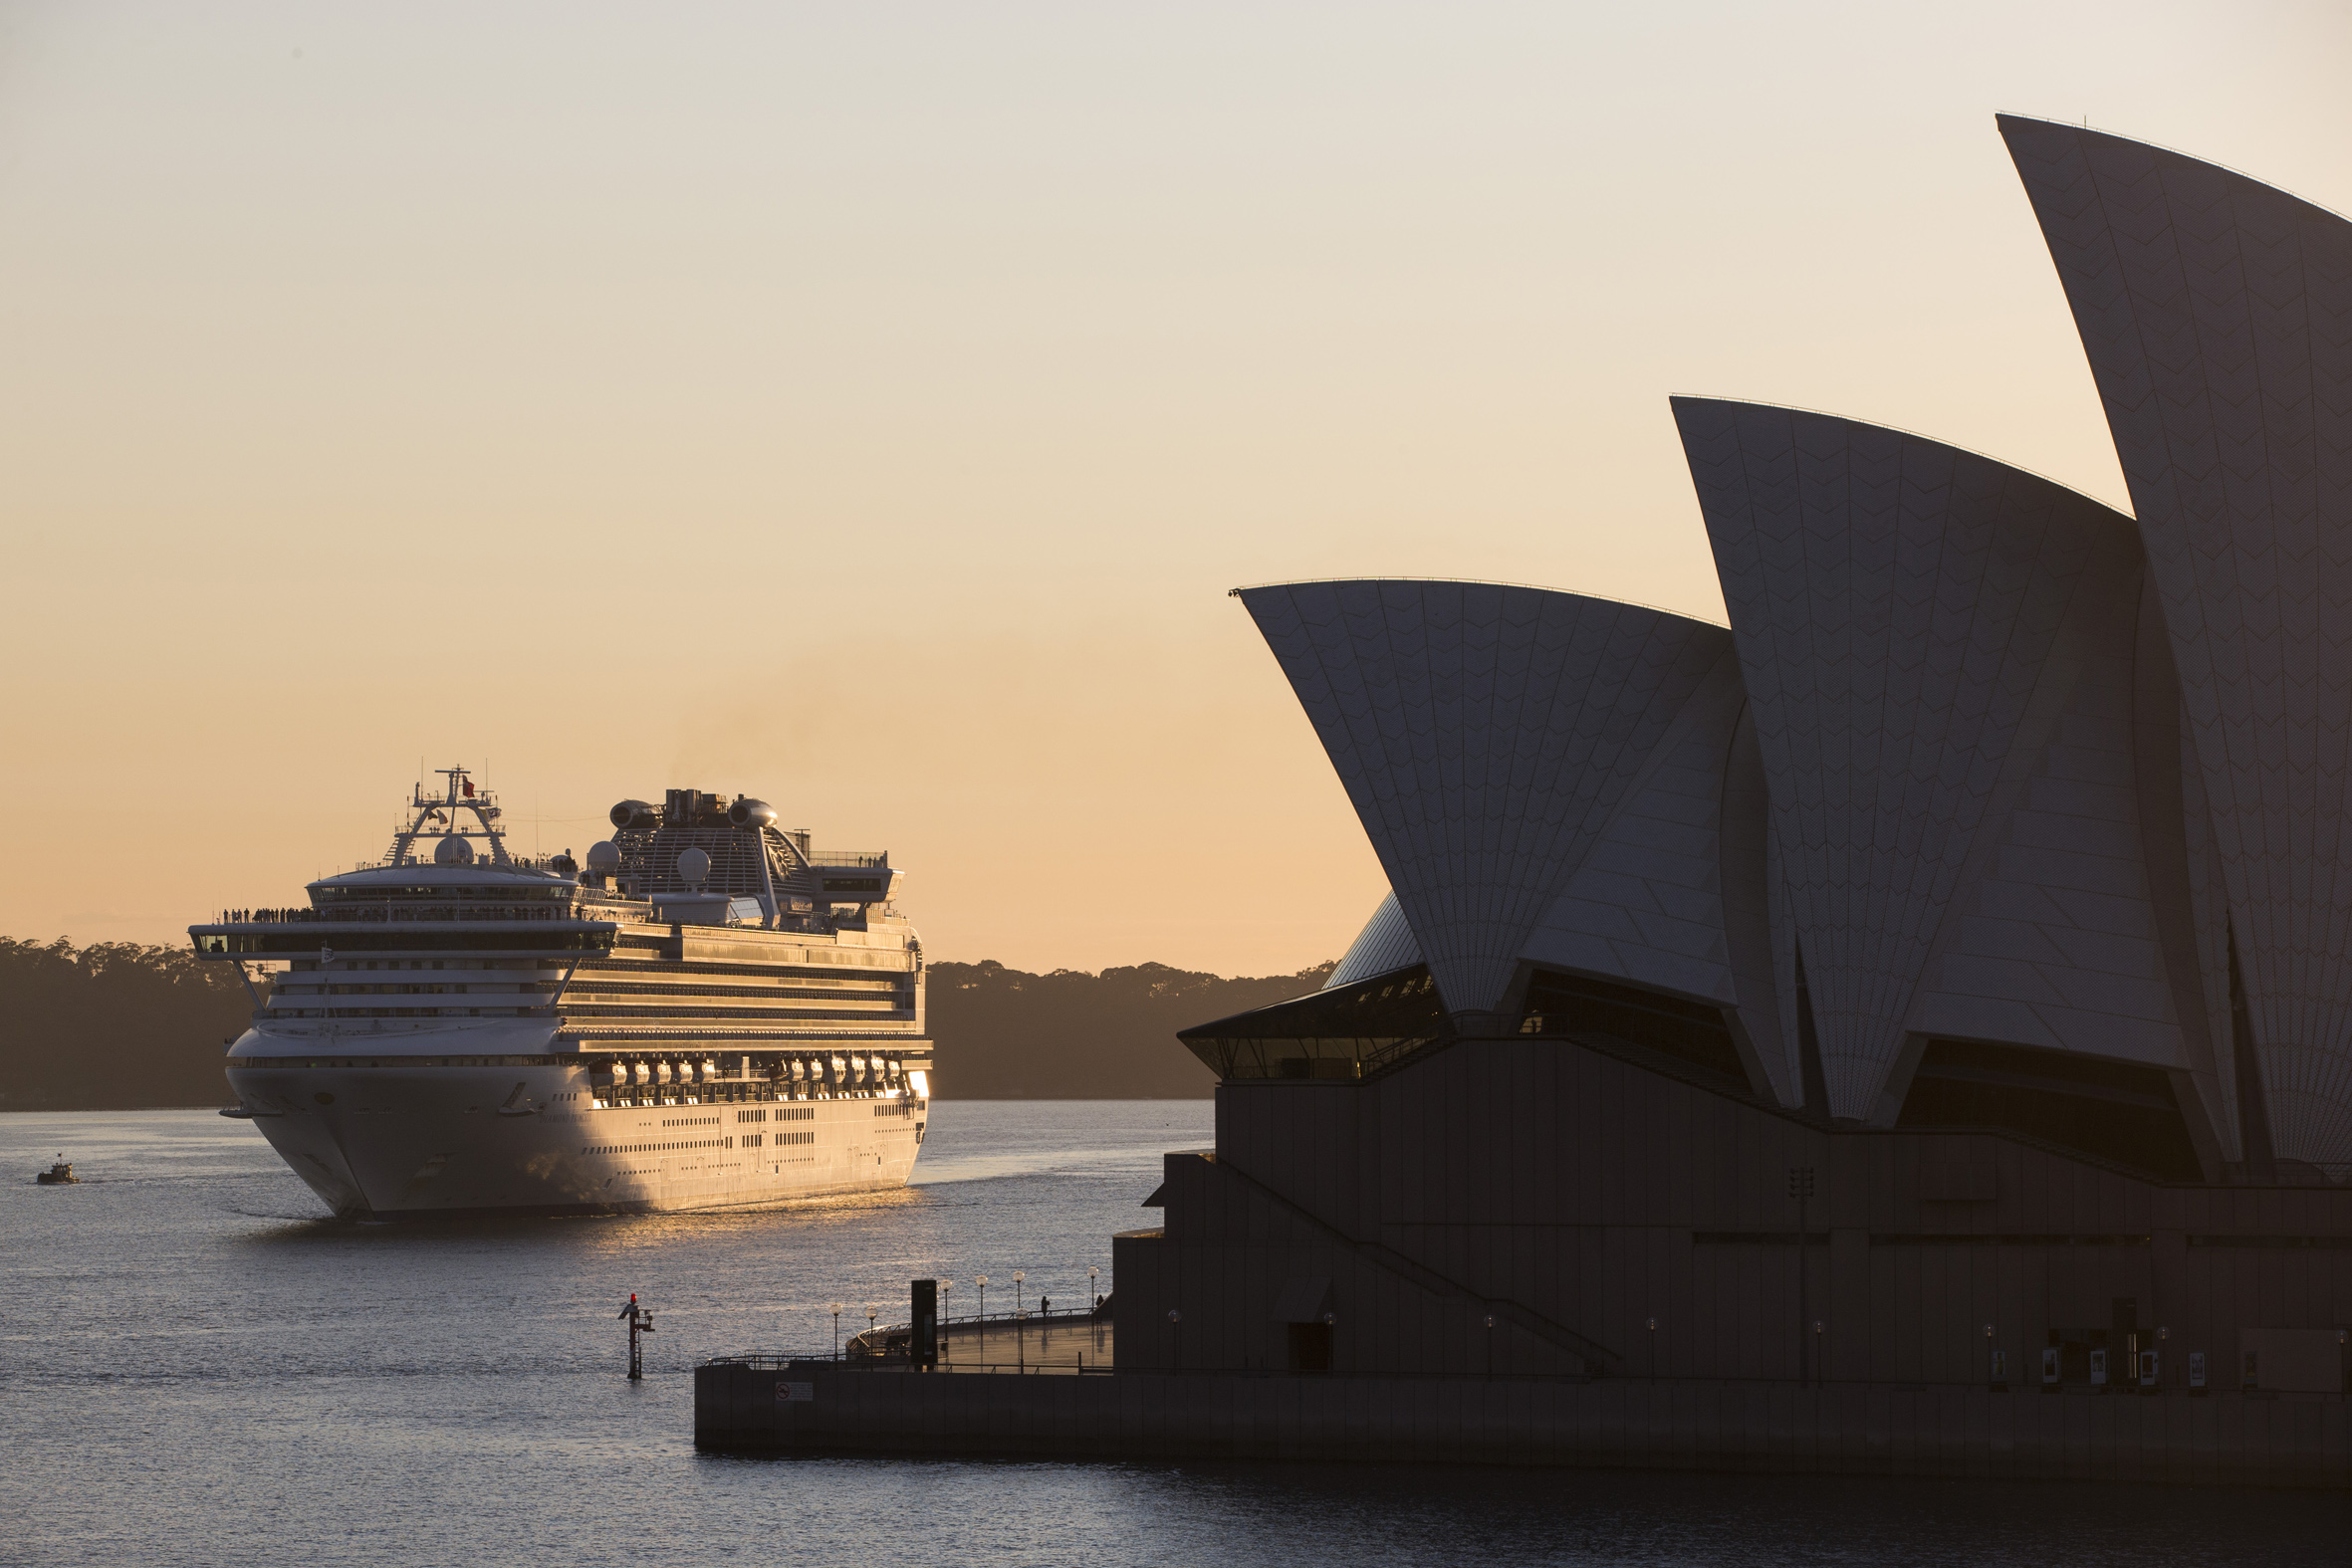 Diamond Princess arriving in Sydney